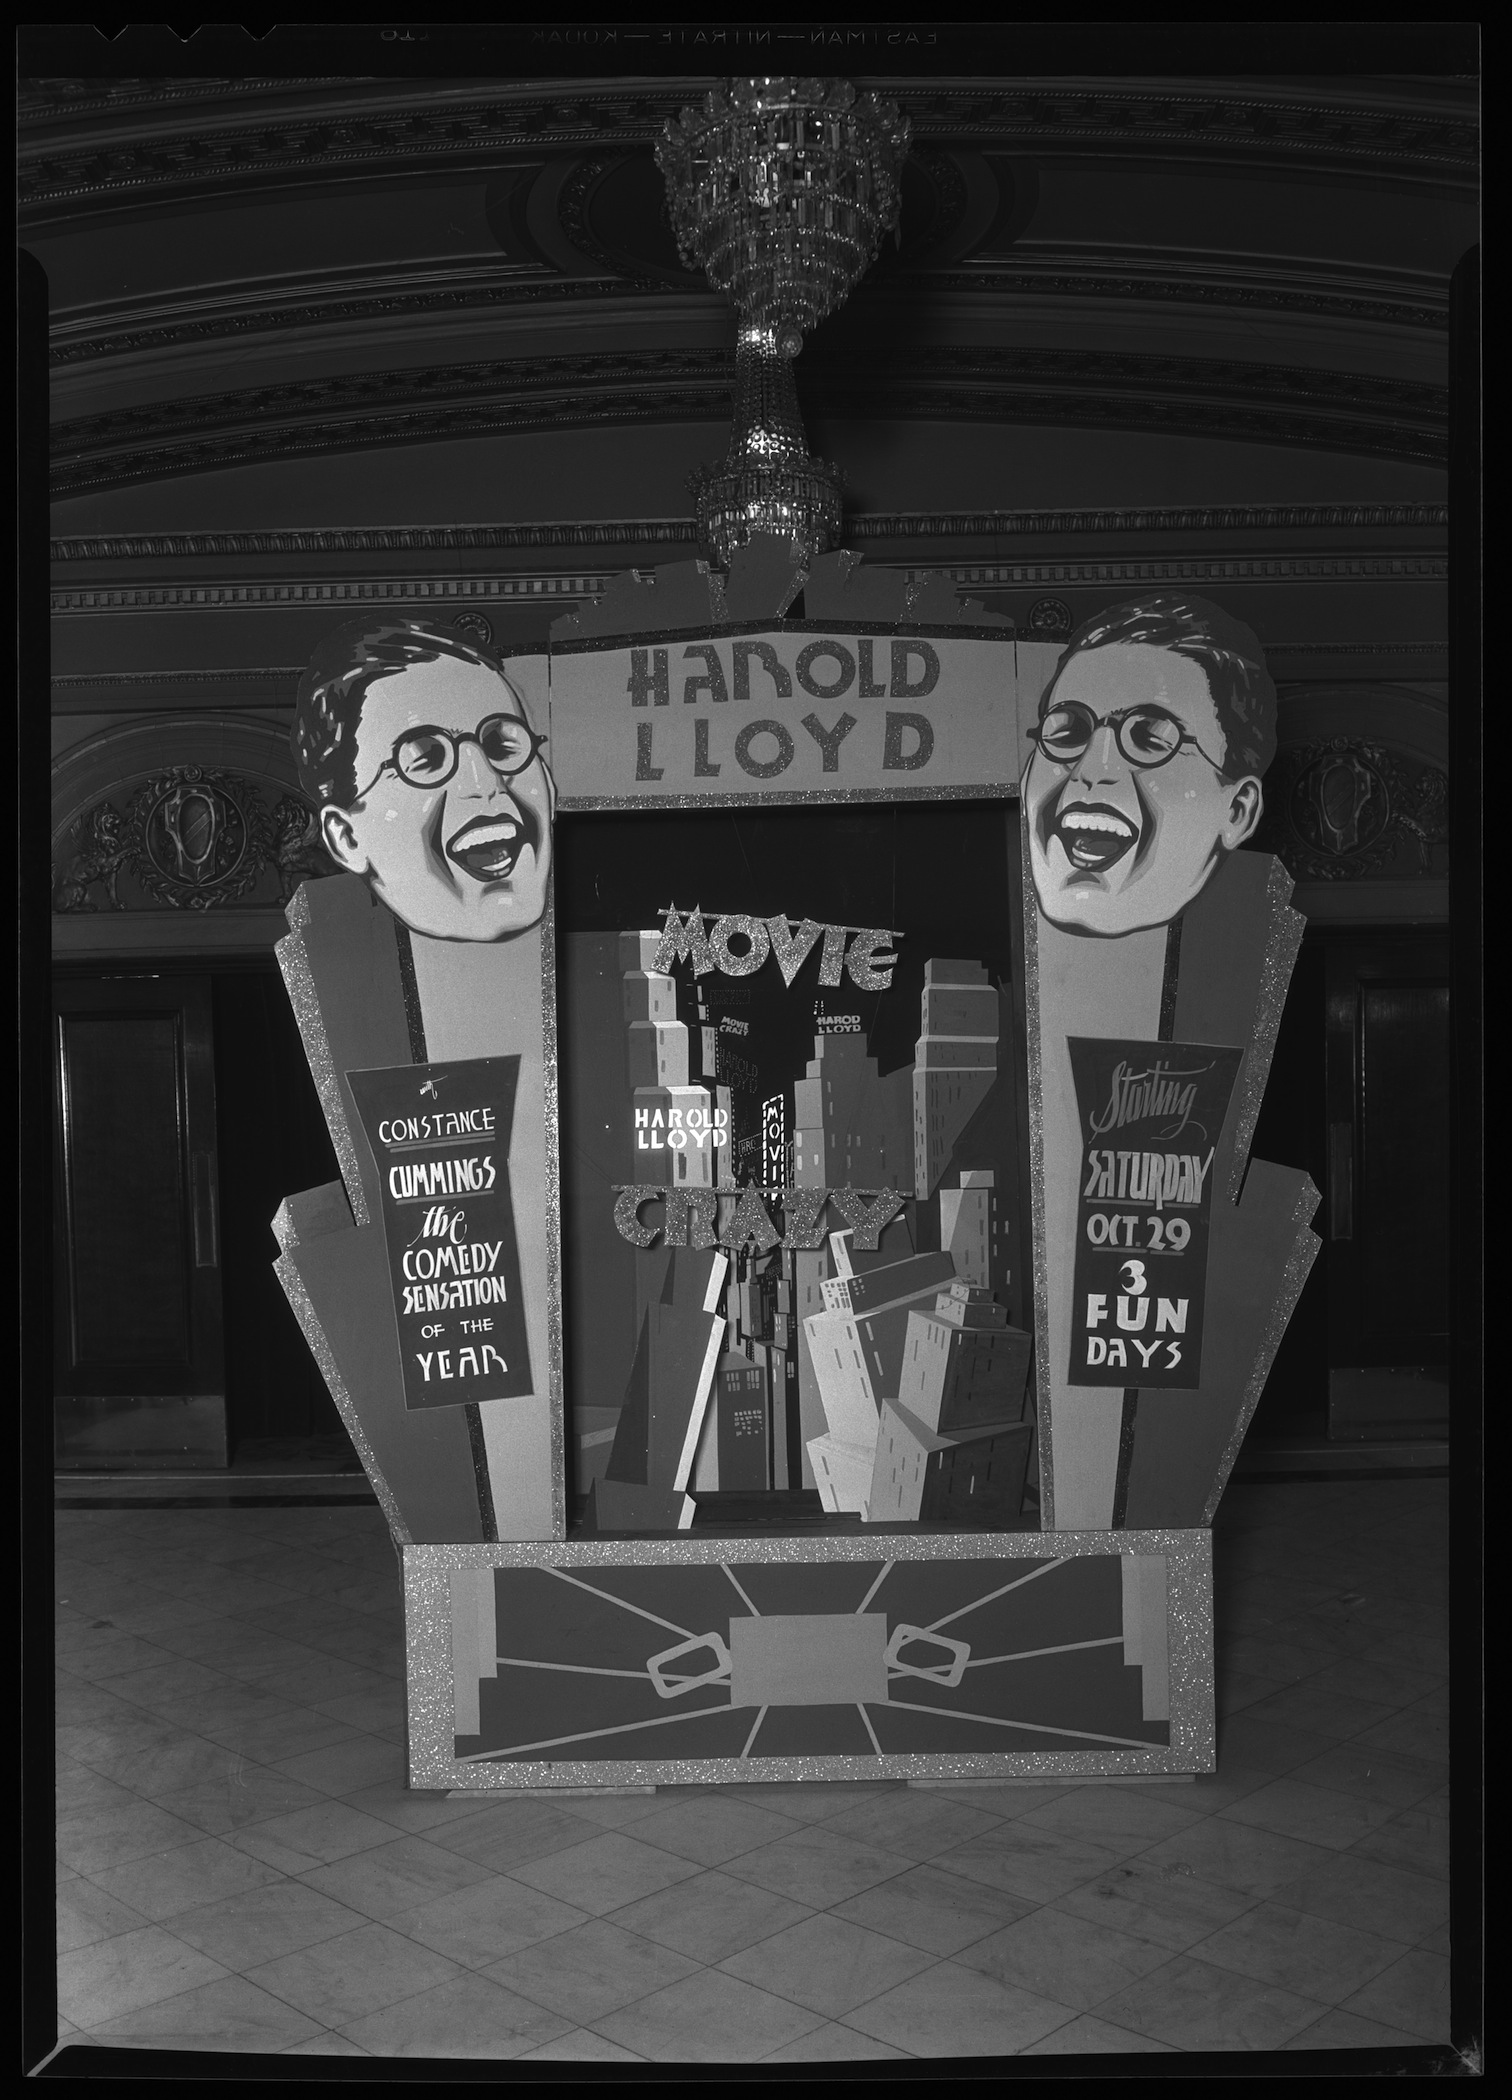 haroldlloyd-moviecrazy